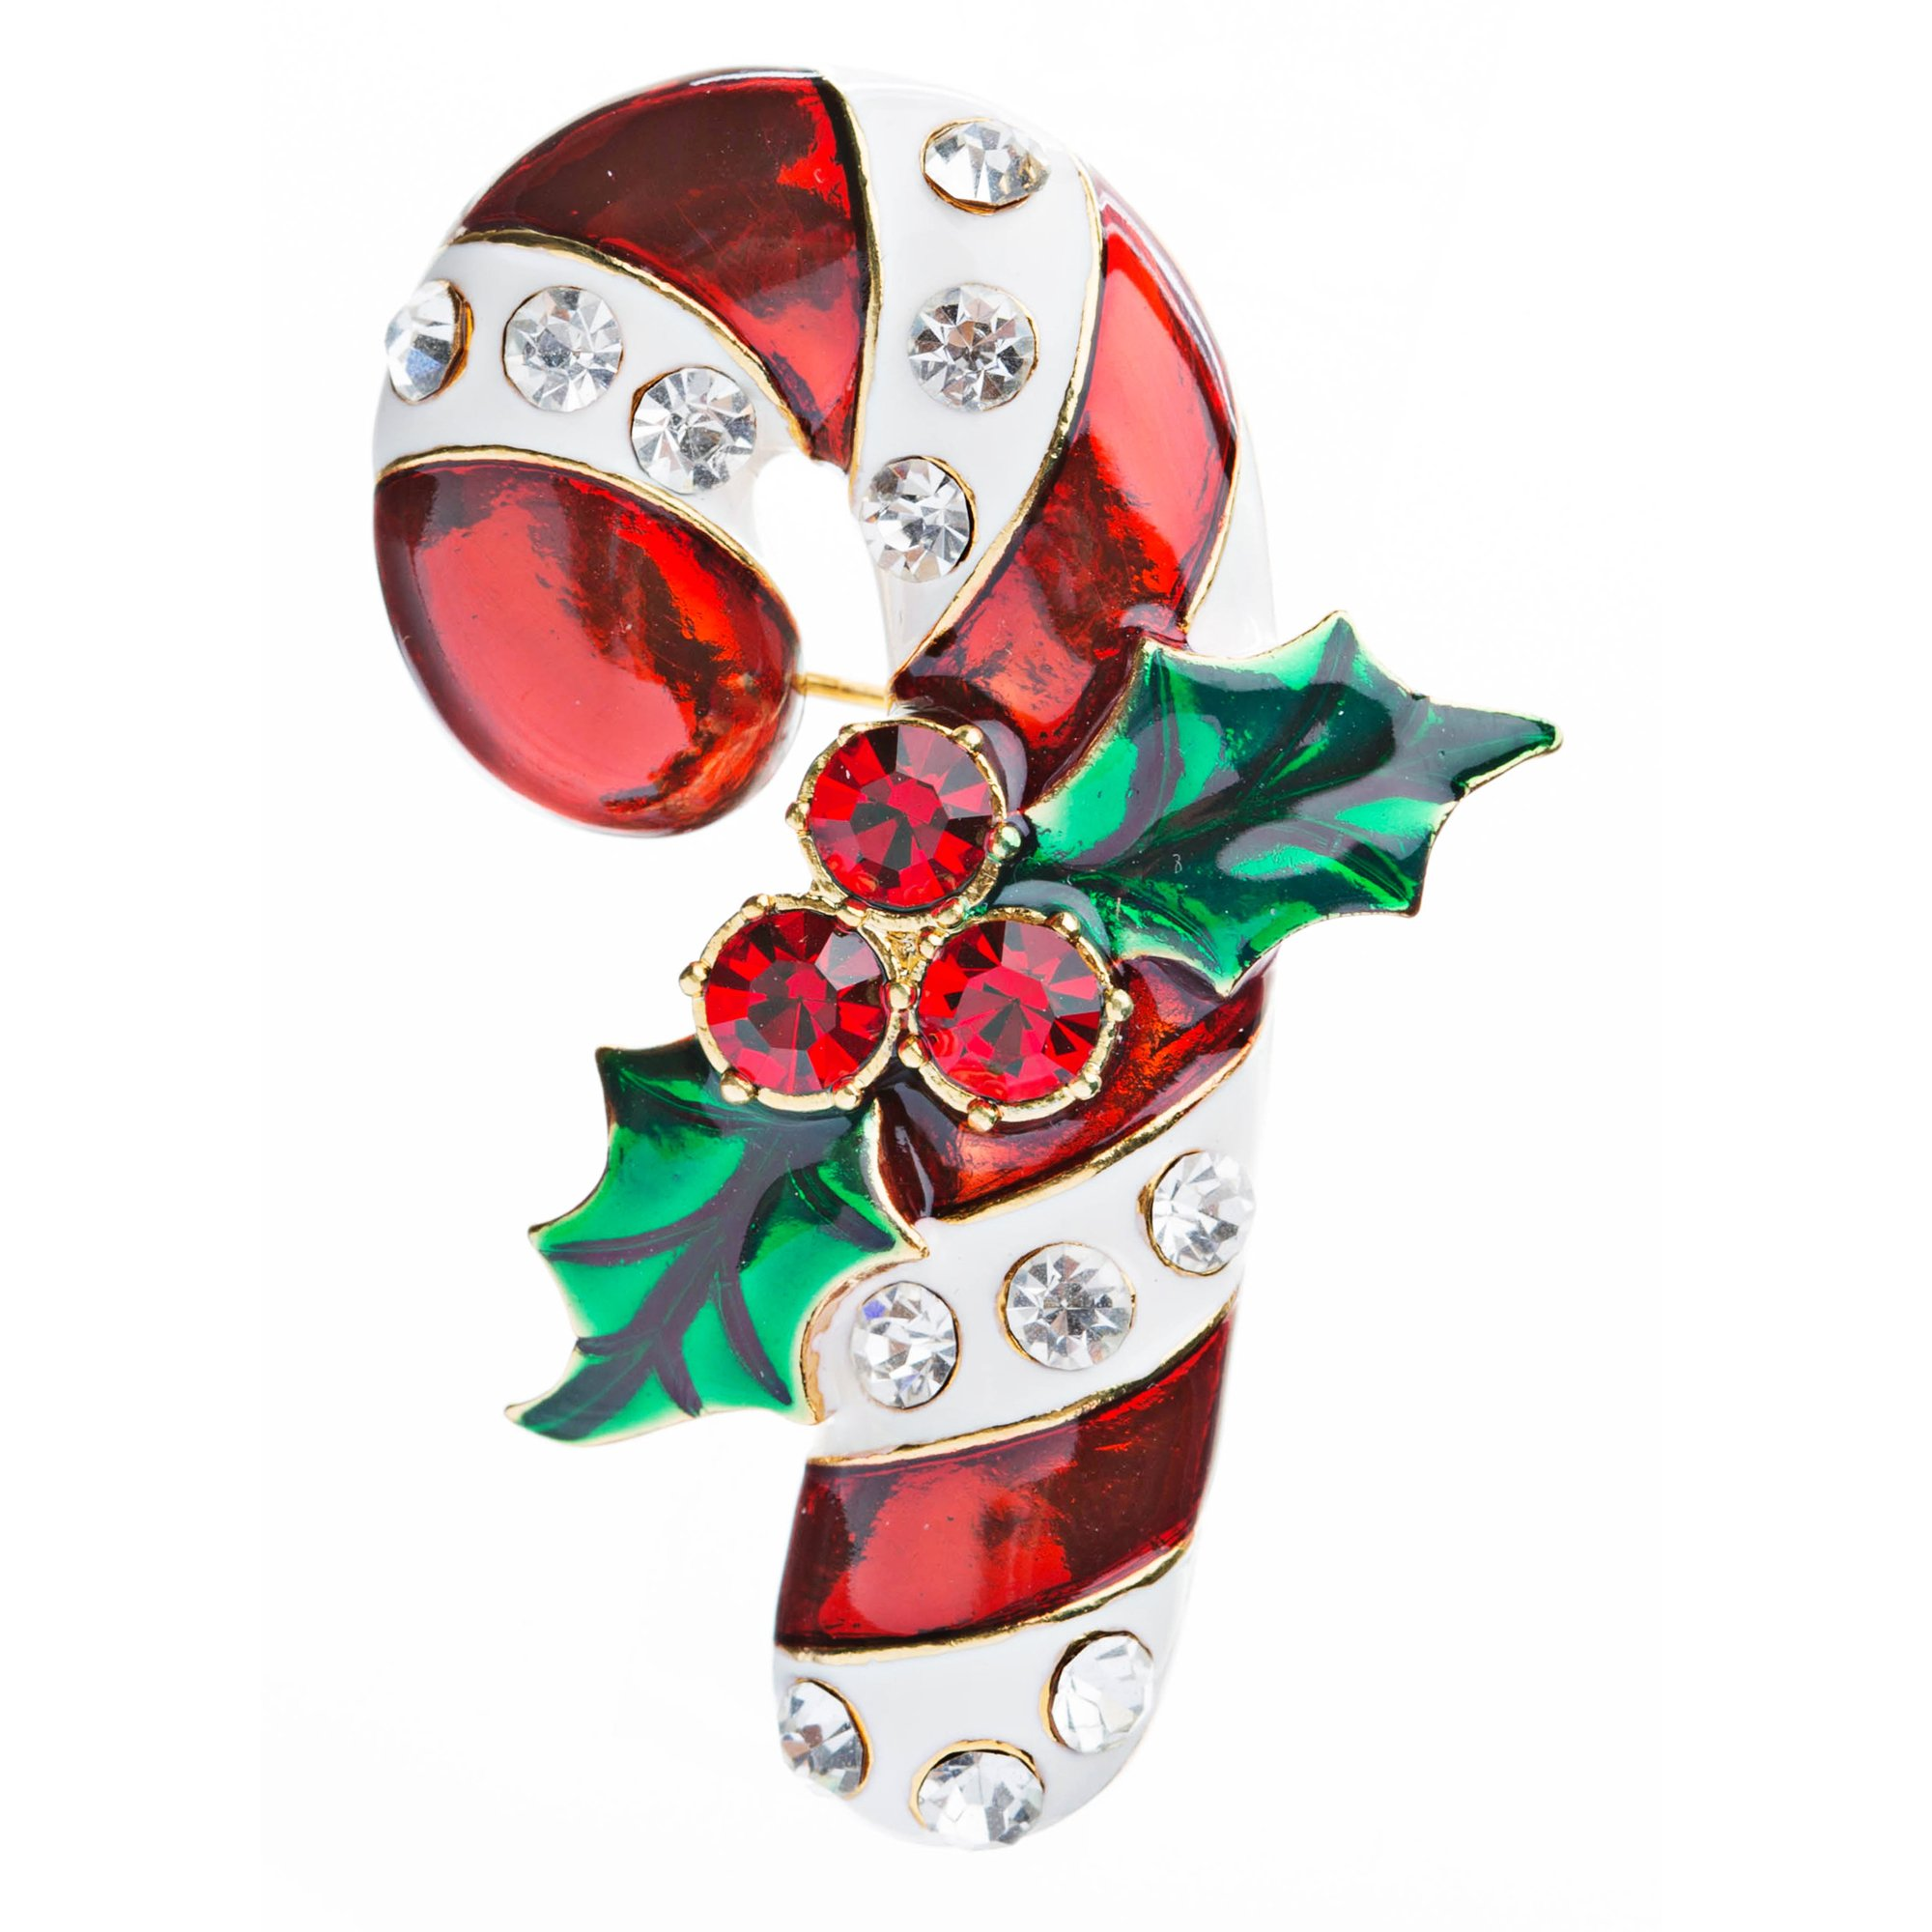 ACCESSORIESFOREVER Christmas Jewelry Crystal Rhinestone Beautiful Sparkle Candy Cane Brooch BH65